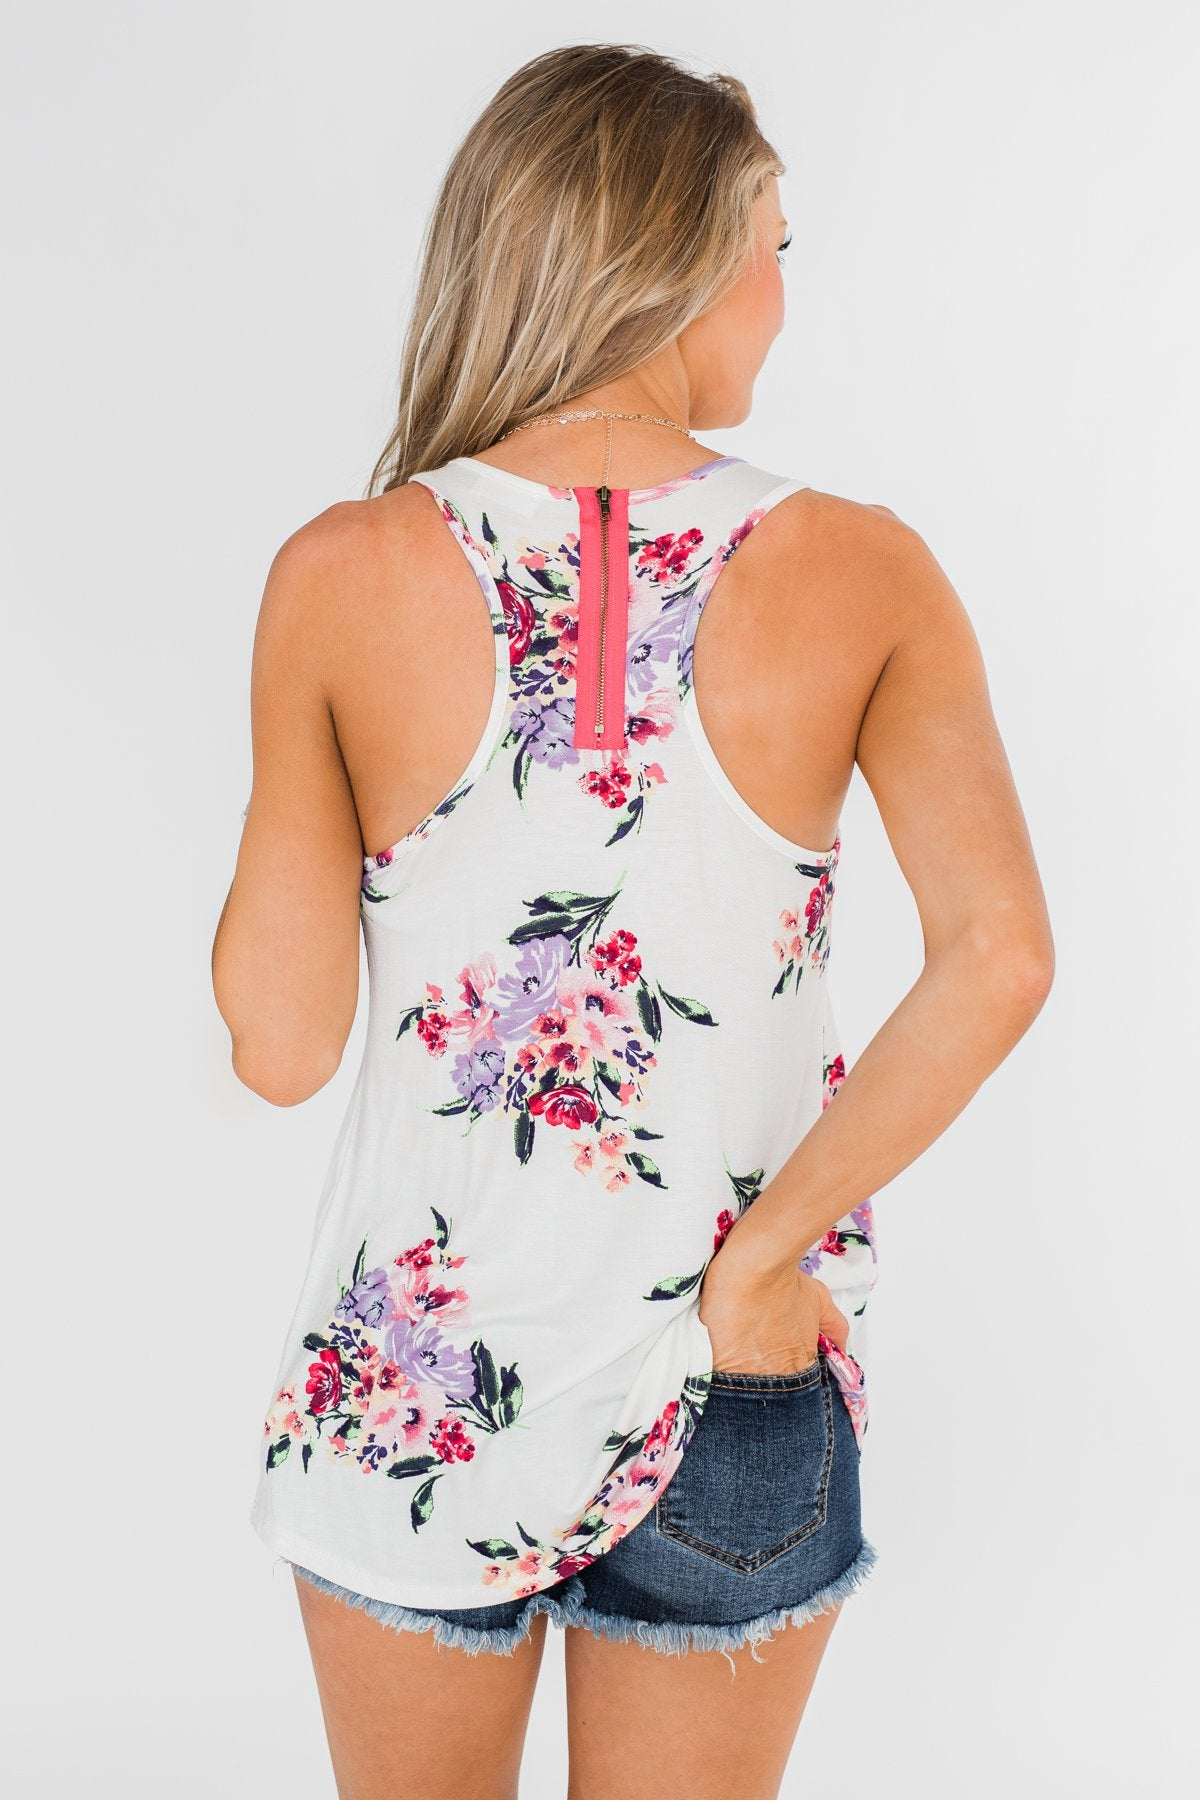 Night Blooms Floral Racerback Tank Top- Ivory